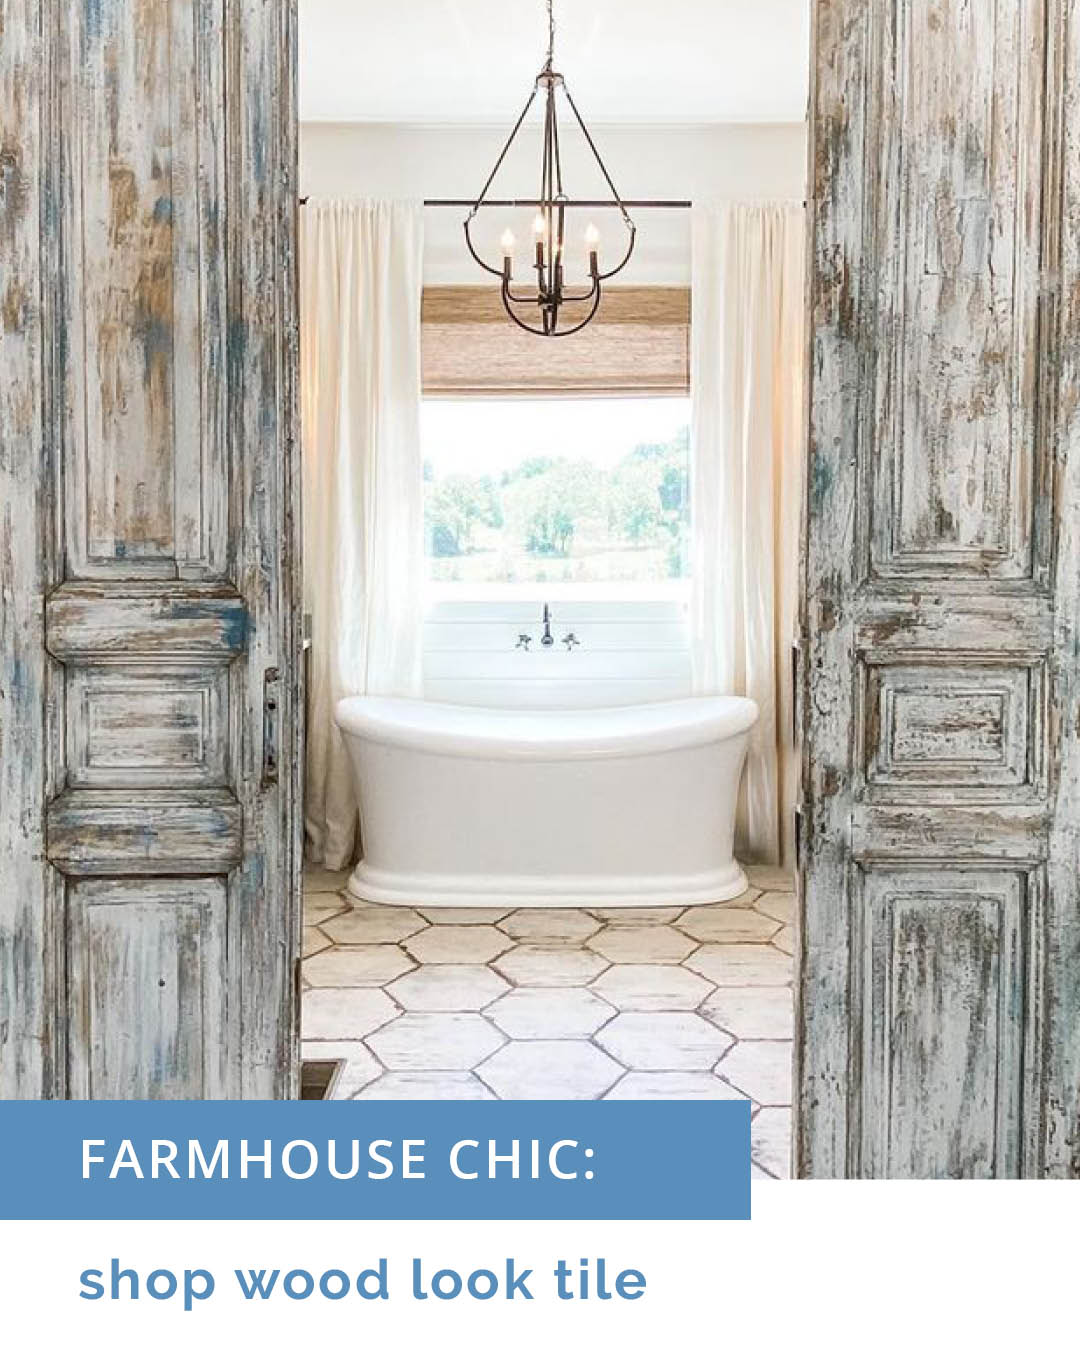 Get farmhouse Chic style with Wood Look Tiles